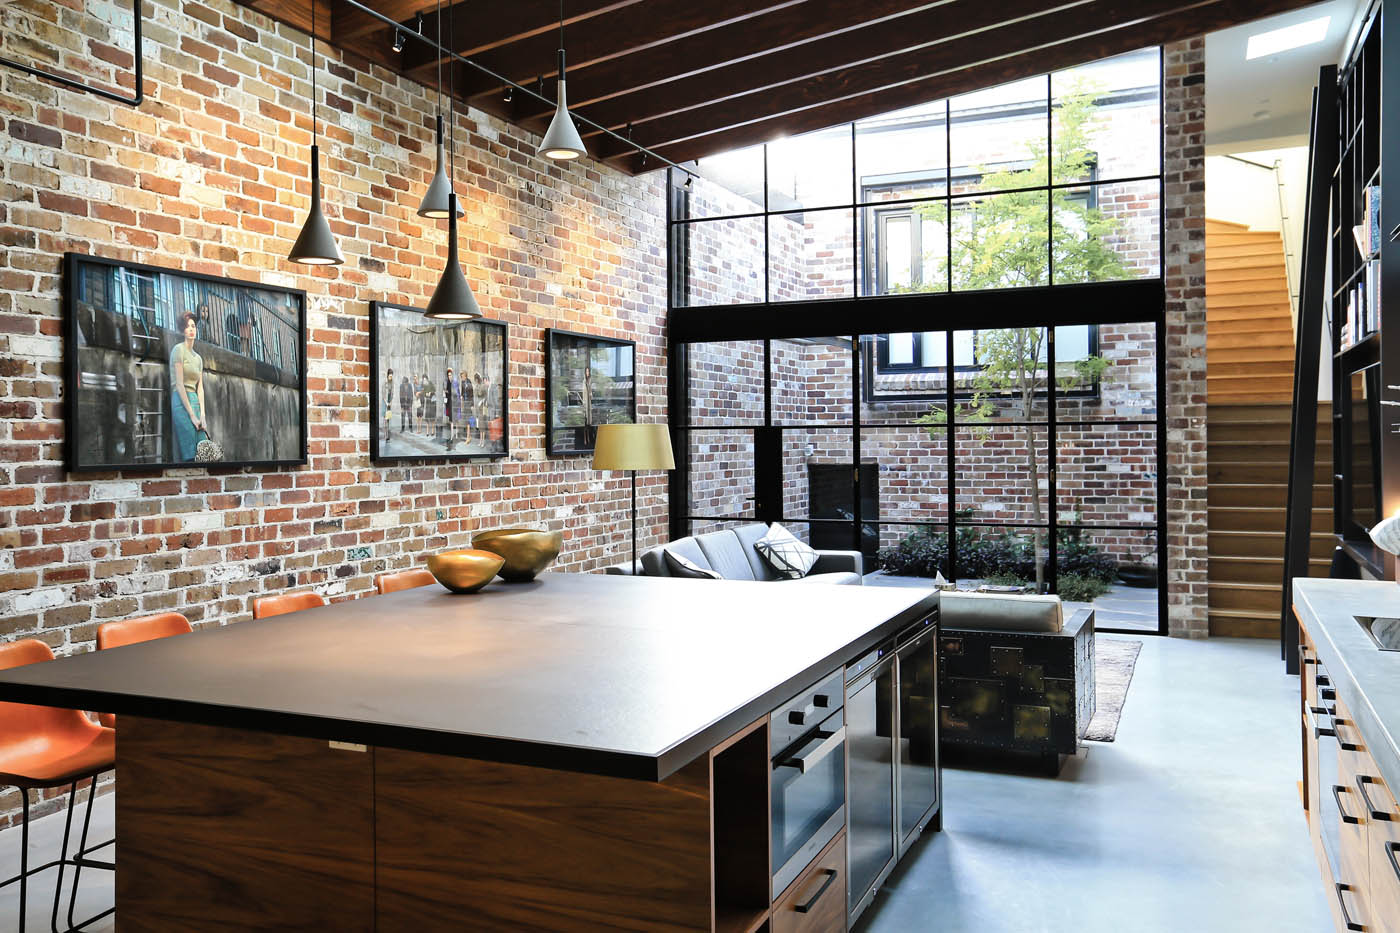 Darlinghurst Warehouse by award winning Sydney residential architecture firm Sam Crawford Architects. Rich material palette provides characteristic to the open living and dining space, looking out to a light-filled courtyard.